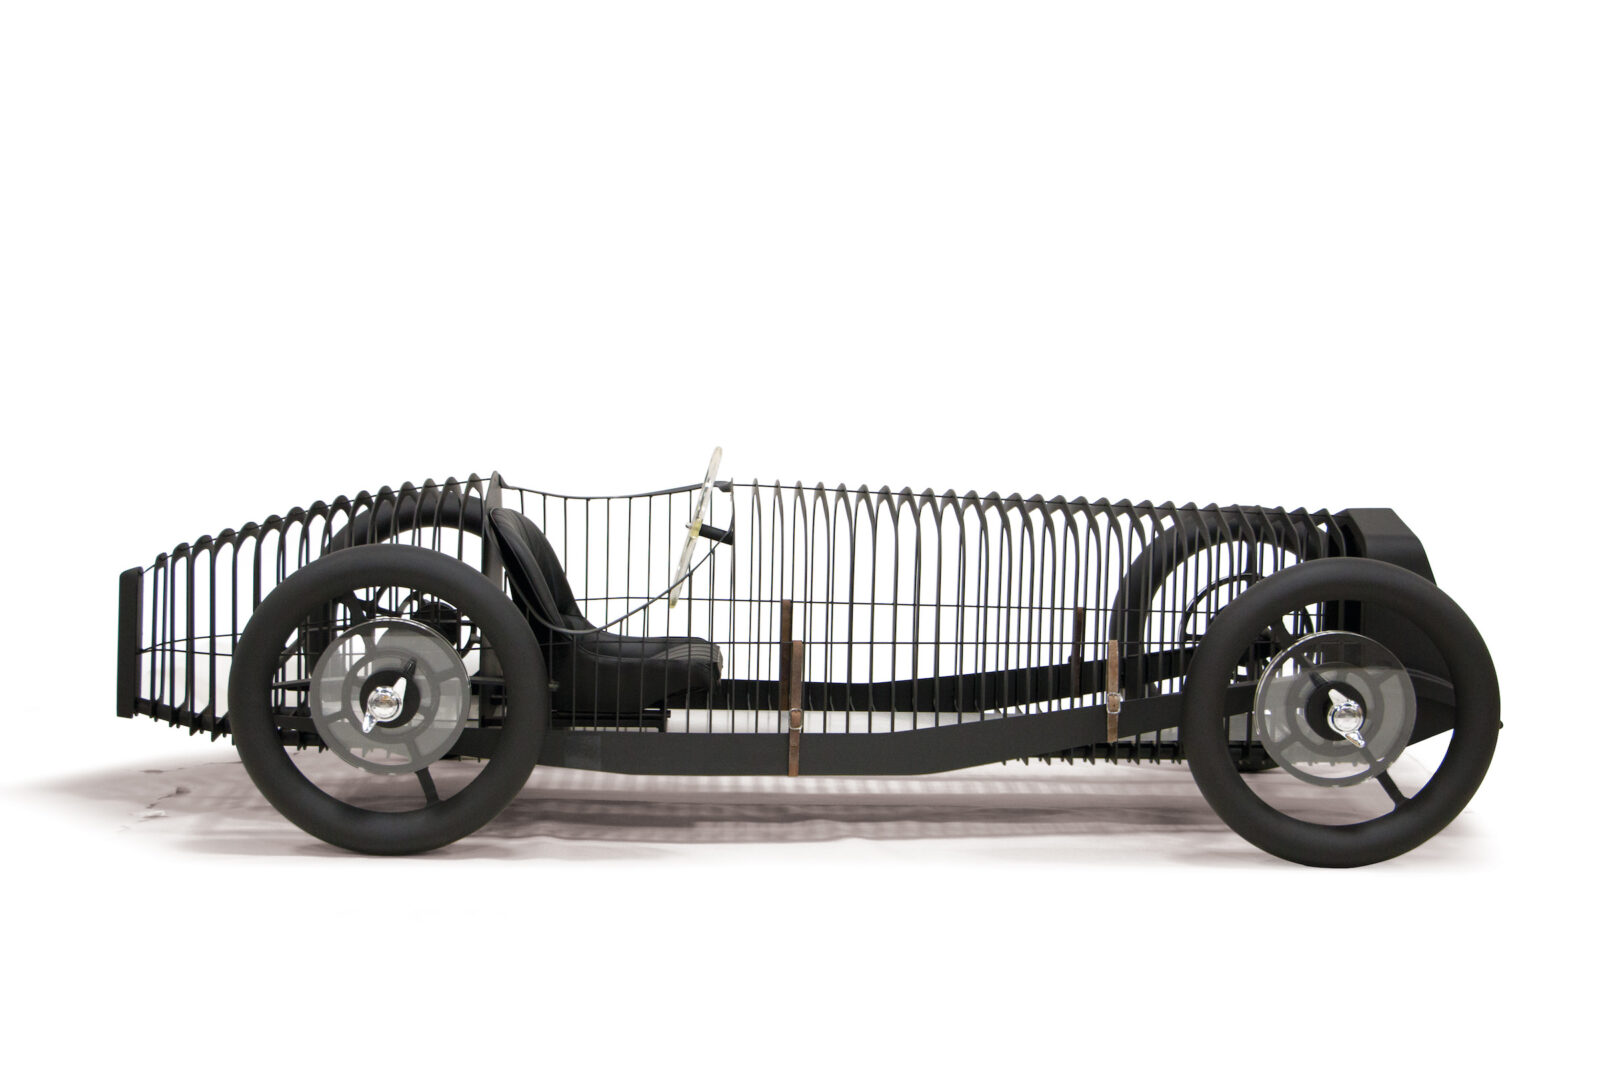 Delage 15 S8 by Raoul.W Sculpture 1600x1067 - Delage 15 S8 by Raoul.W